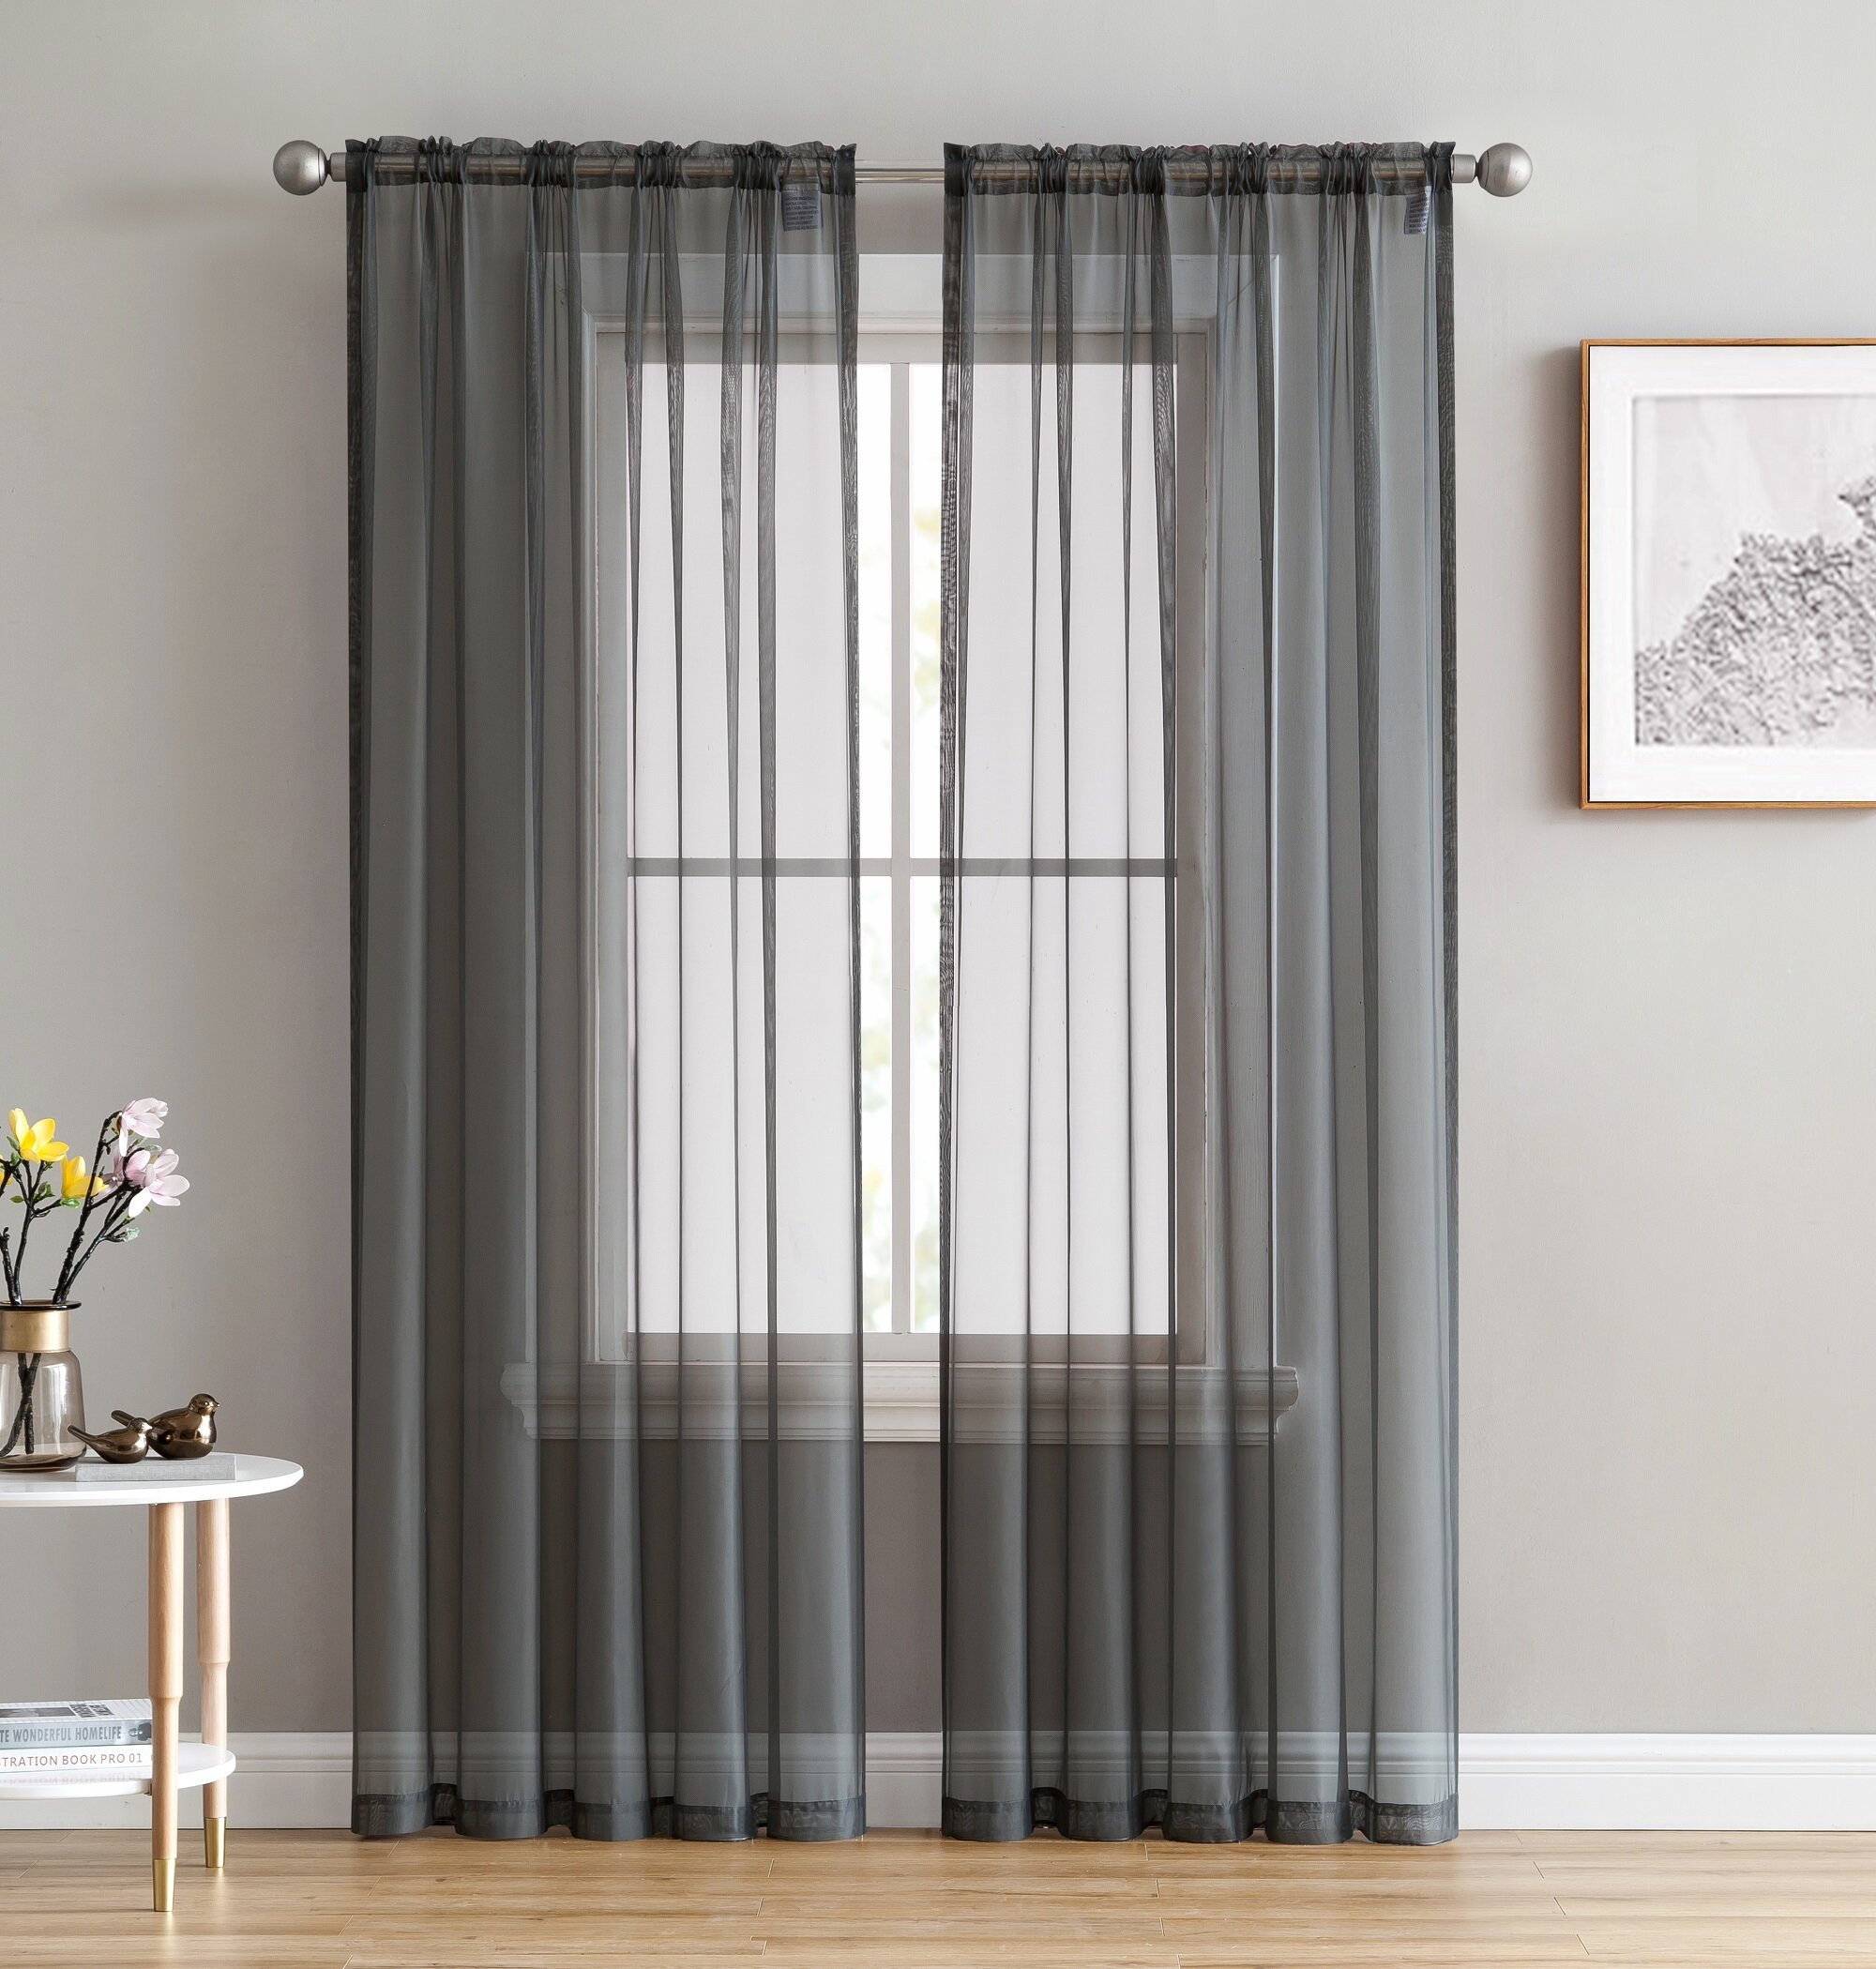 Brushgrove Solid Sheer Rod Pocket Window Curtain Panels With Regard To Emily Sheer Voile Grommet Curtain Panels (View 8 of 20)